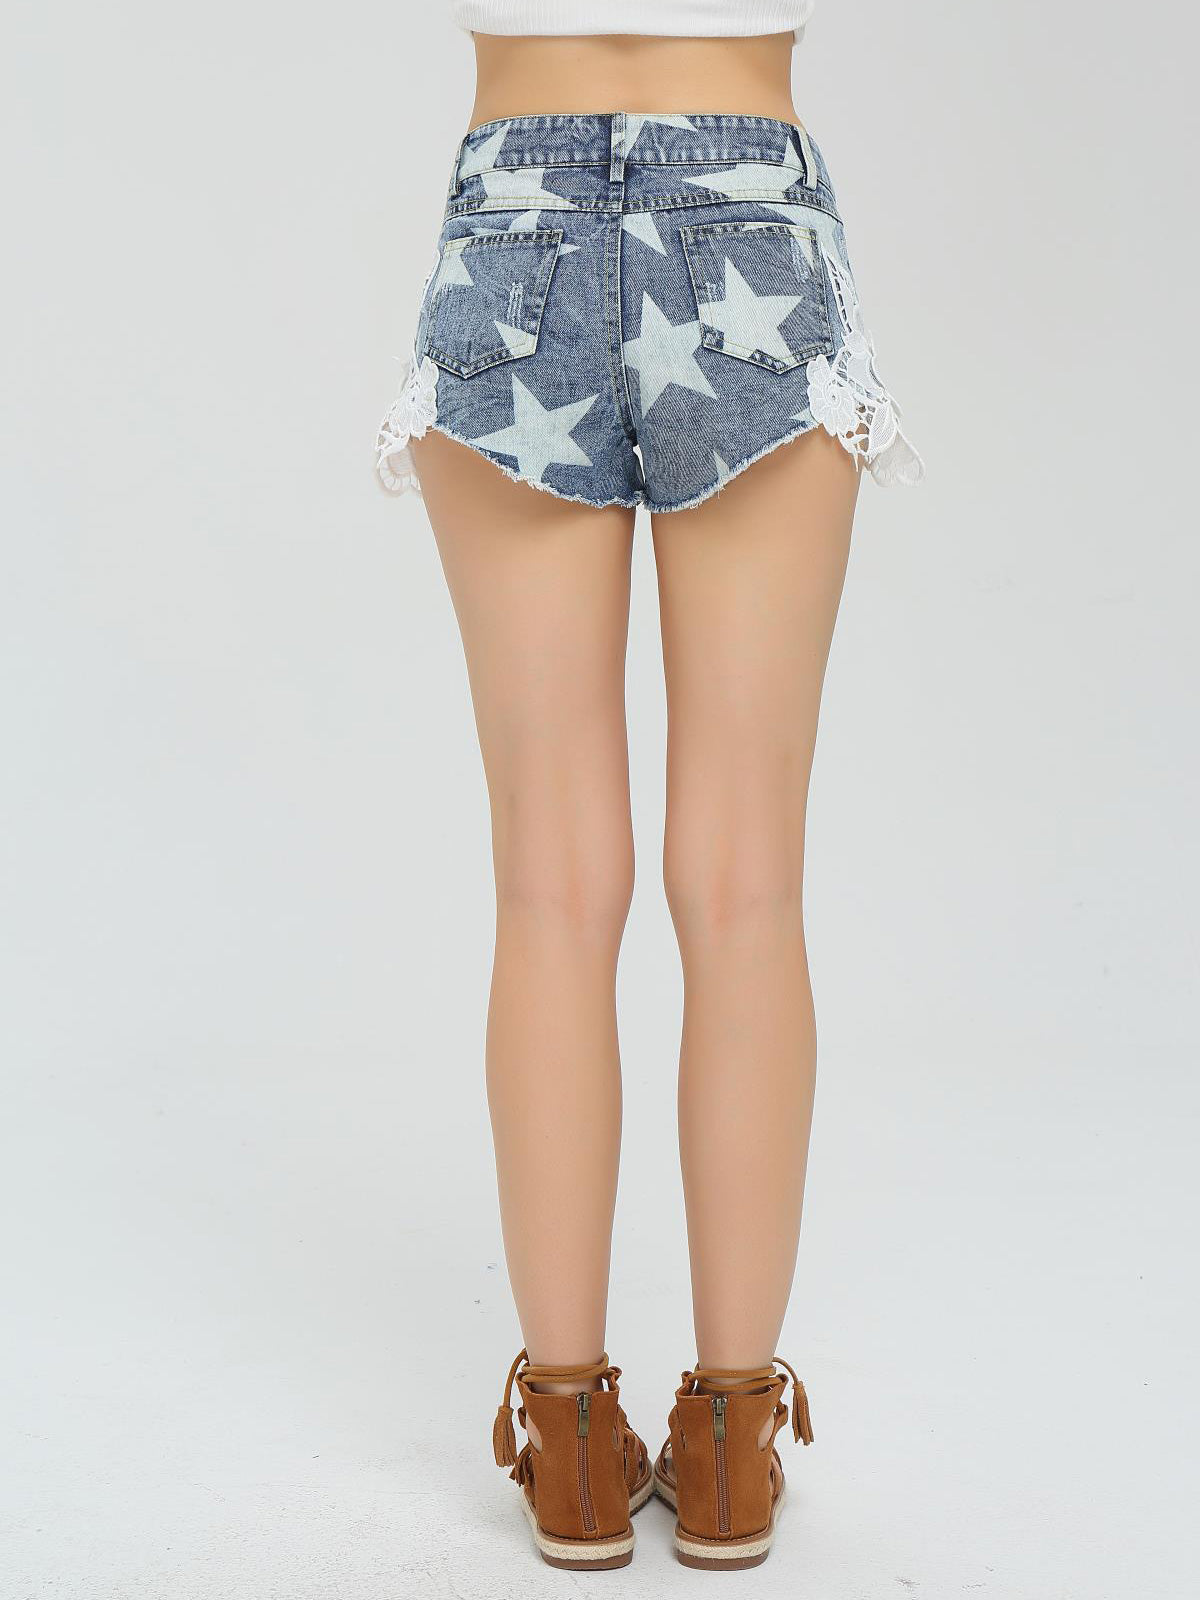 Take Me Somewhere Denim Lace Shorts